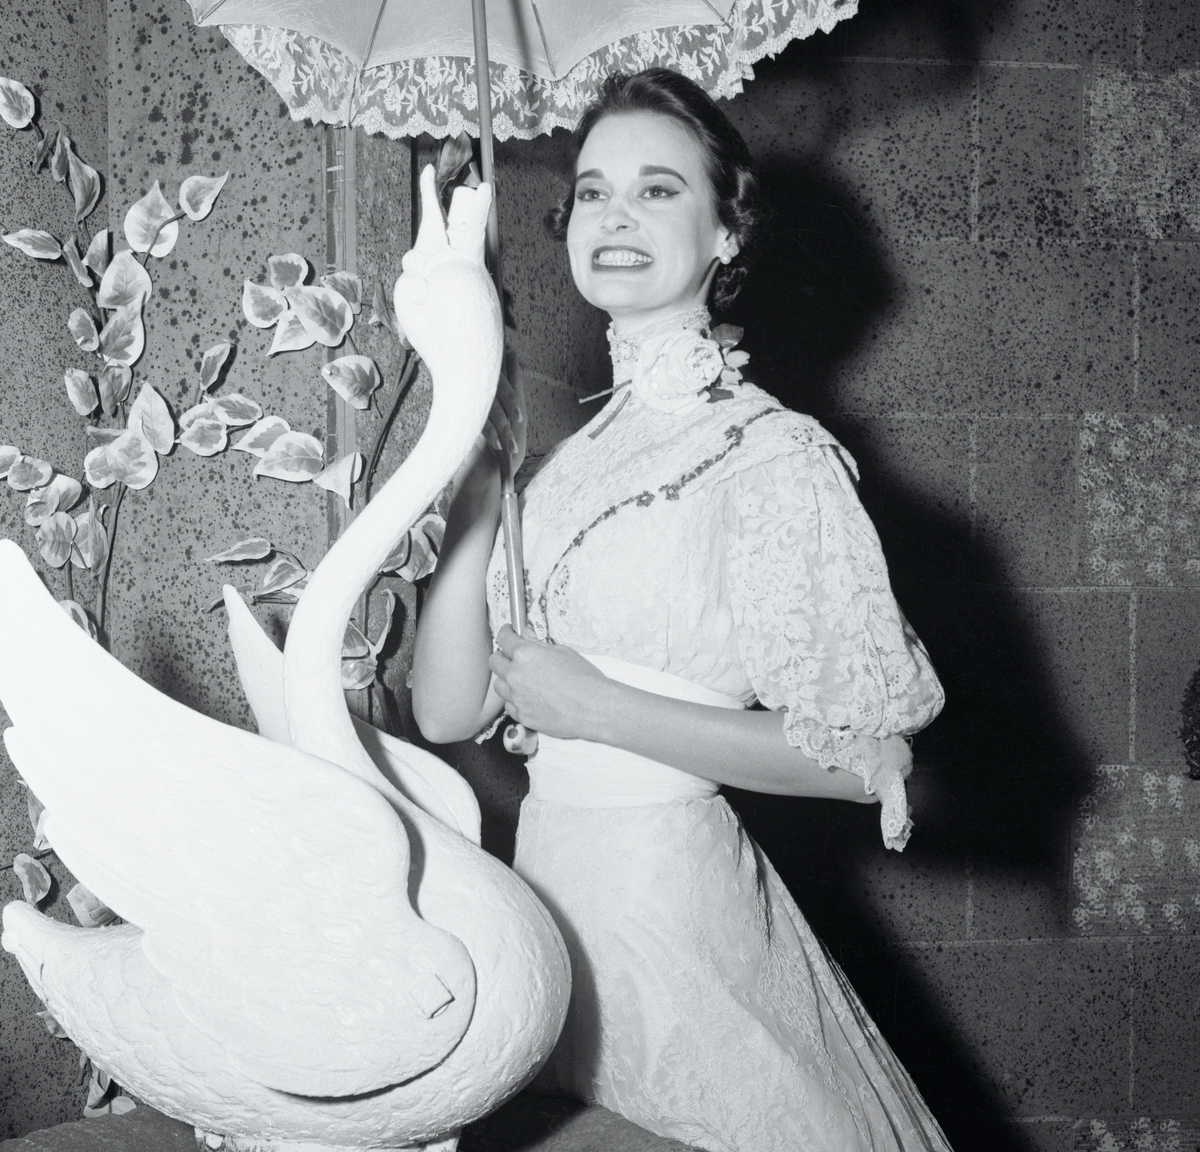 Heiress and stage actress Gloria Vanderbilt wearing her third act costume after her performance in The Swan by Ferenc Moldar.